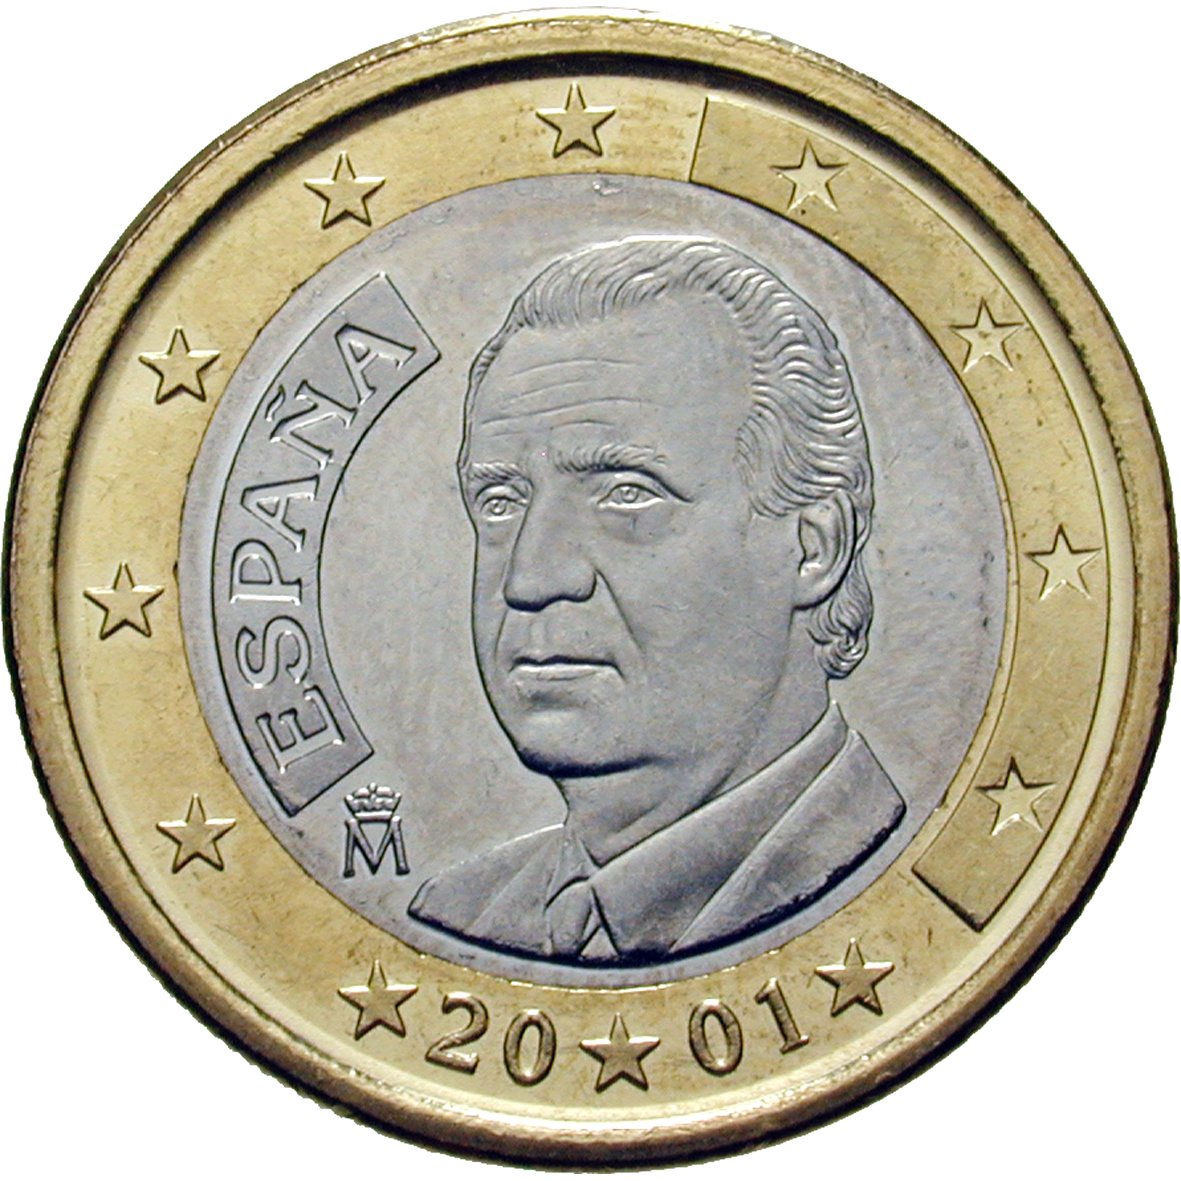 Kingdom of Spain, Juan Carlos I, 1 Euro 2001 (reverse)